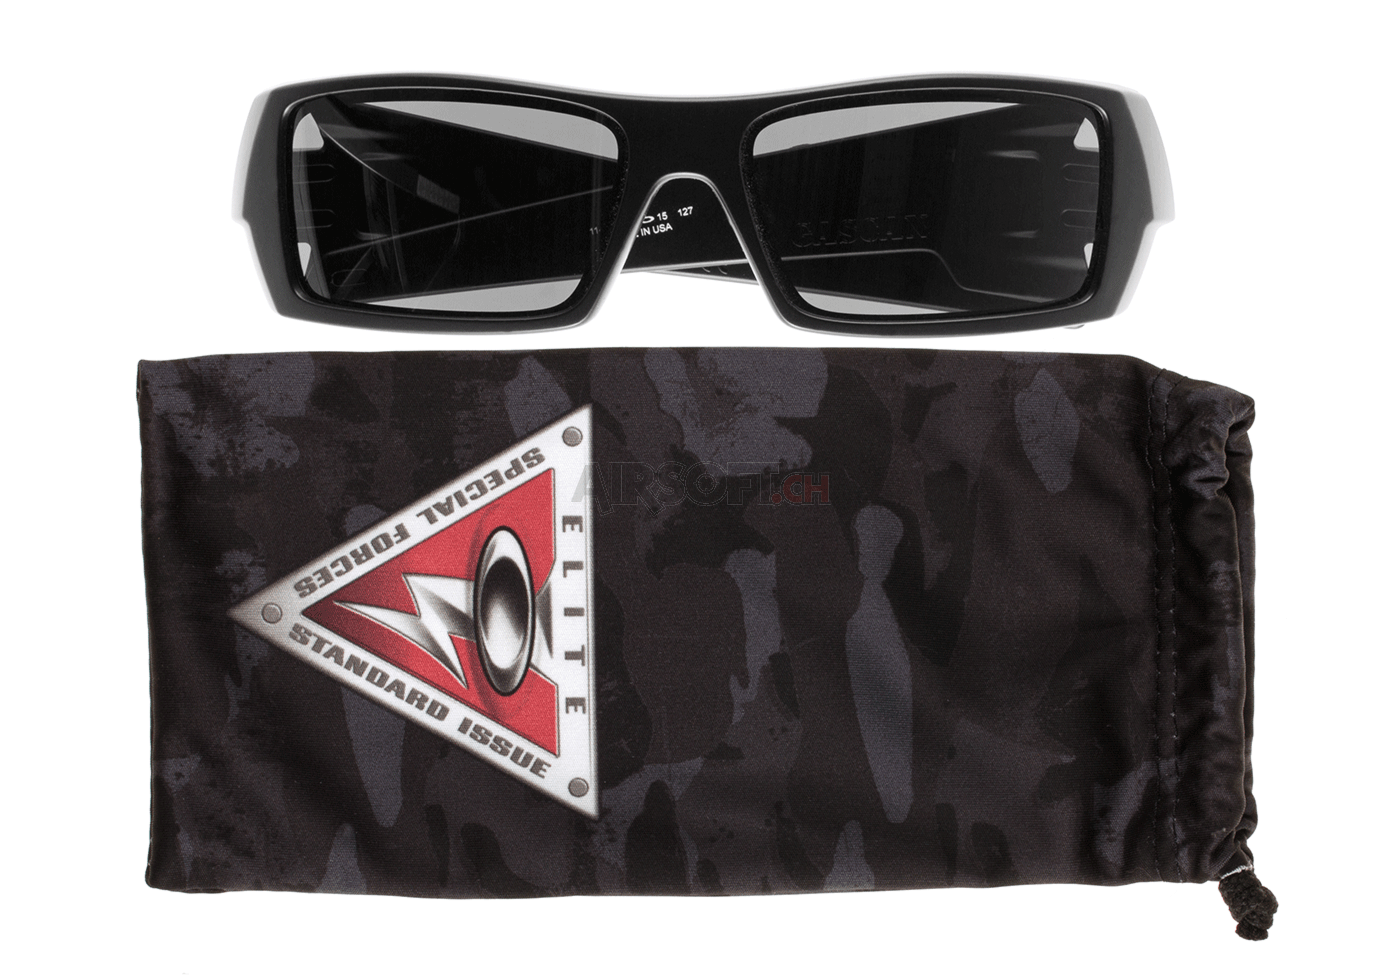 042e7b6f7fbe3 ... sale si gascan us flag black oakley eyewear protective equipment  airsoft.ch online shop 0cf80